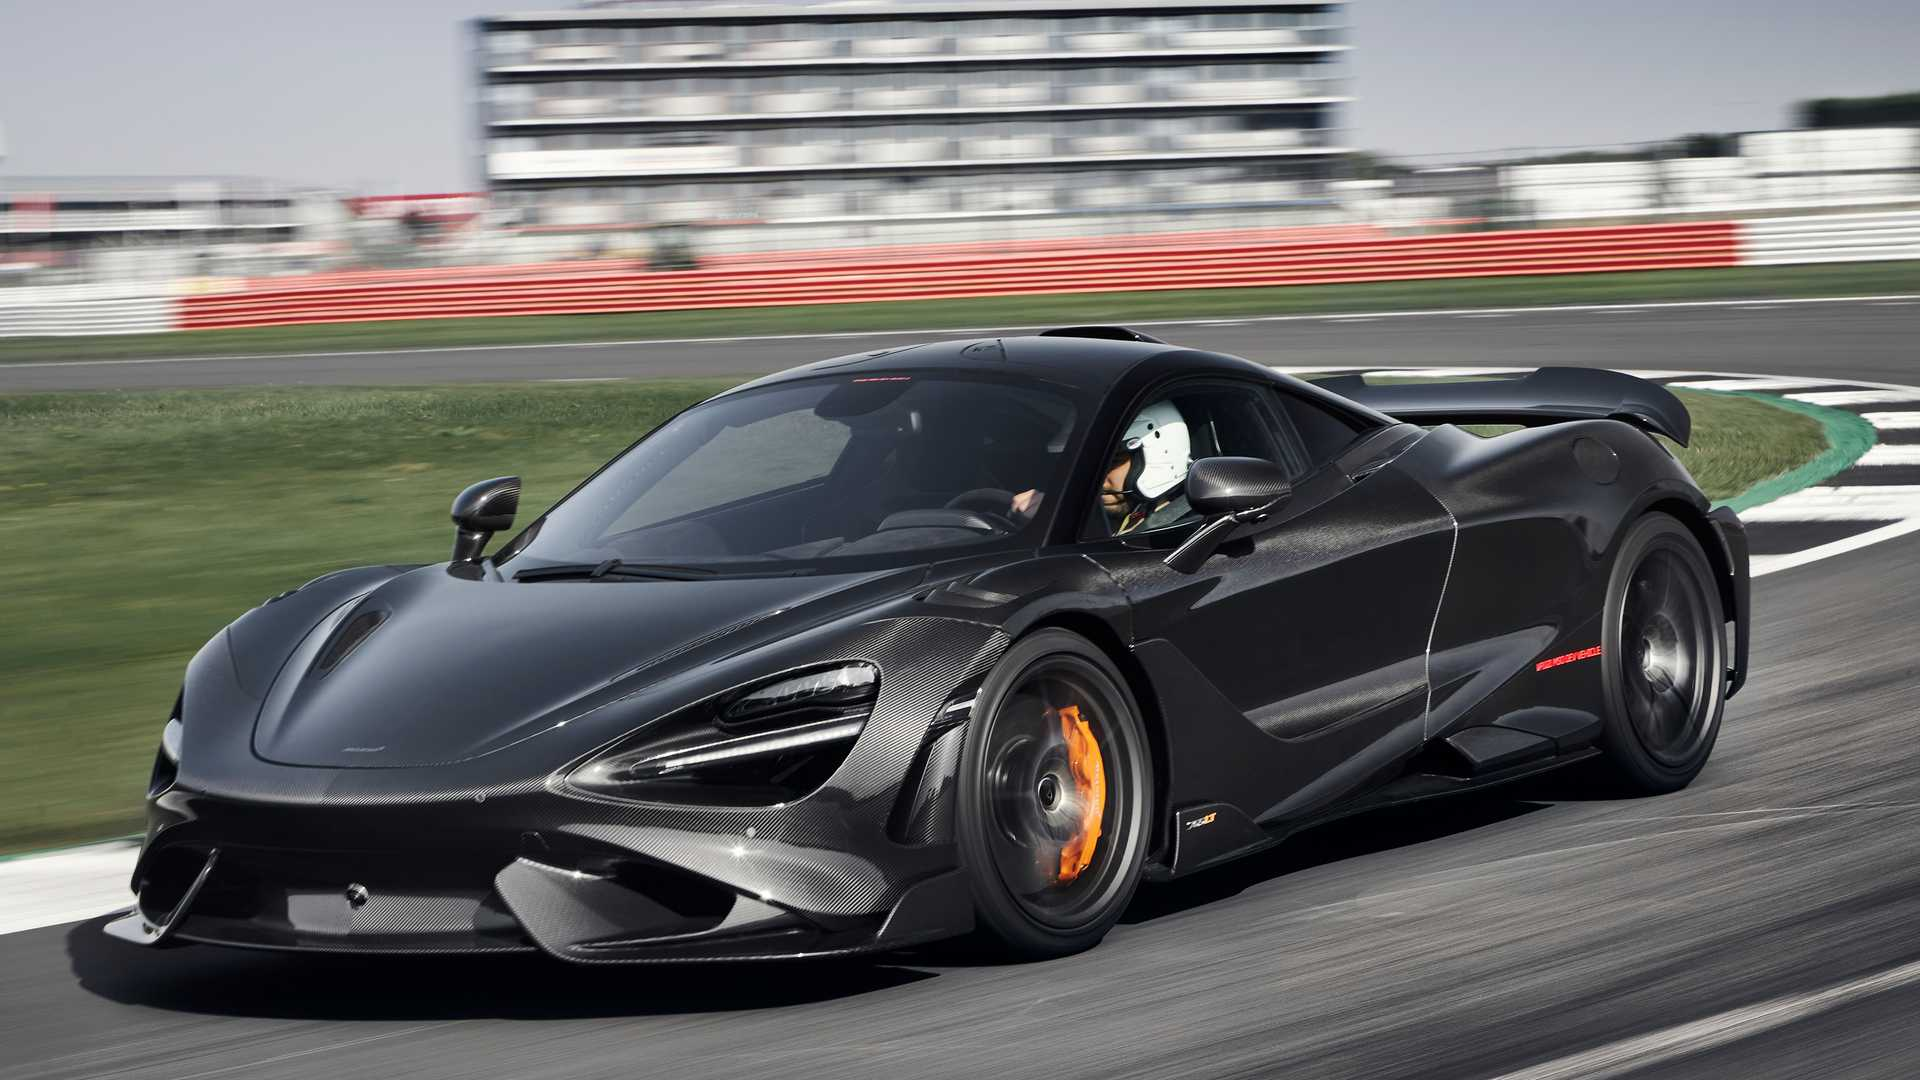 McLaren 765LT Is Even Quicker Than Expected